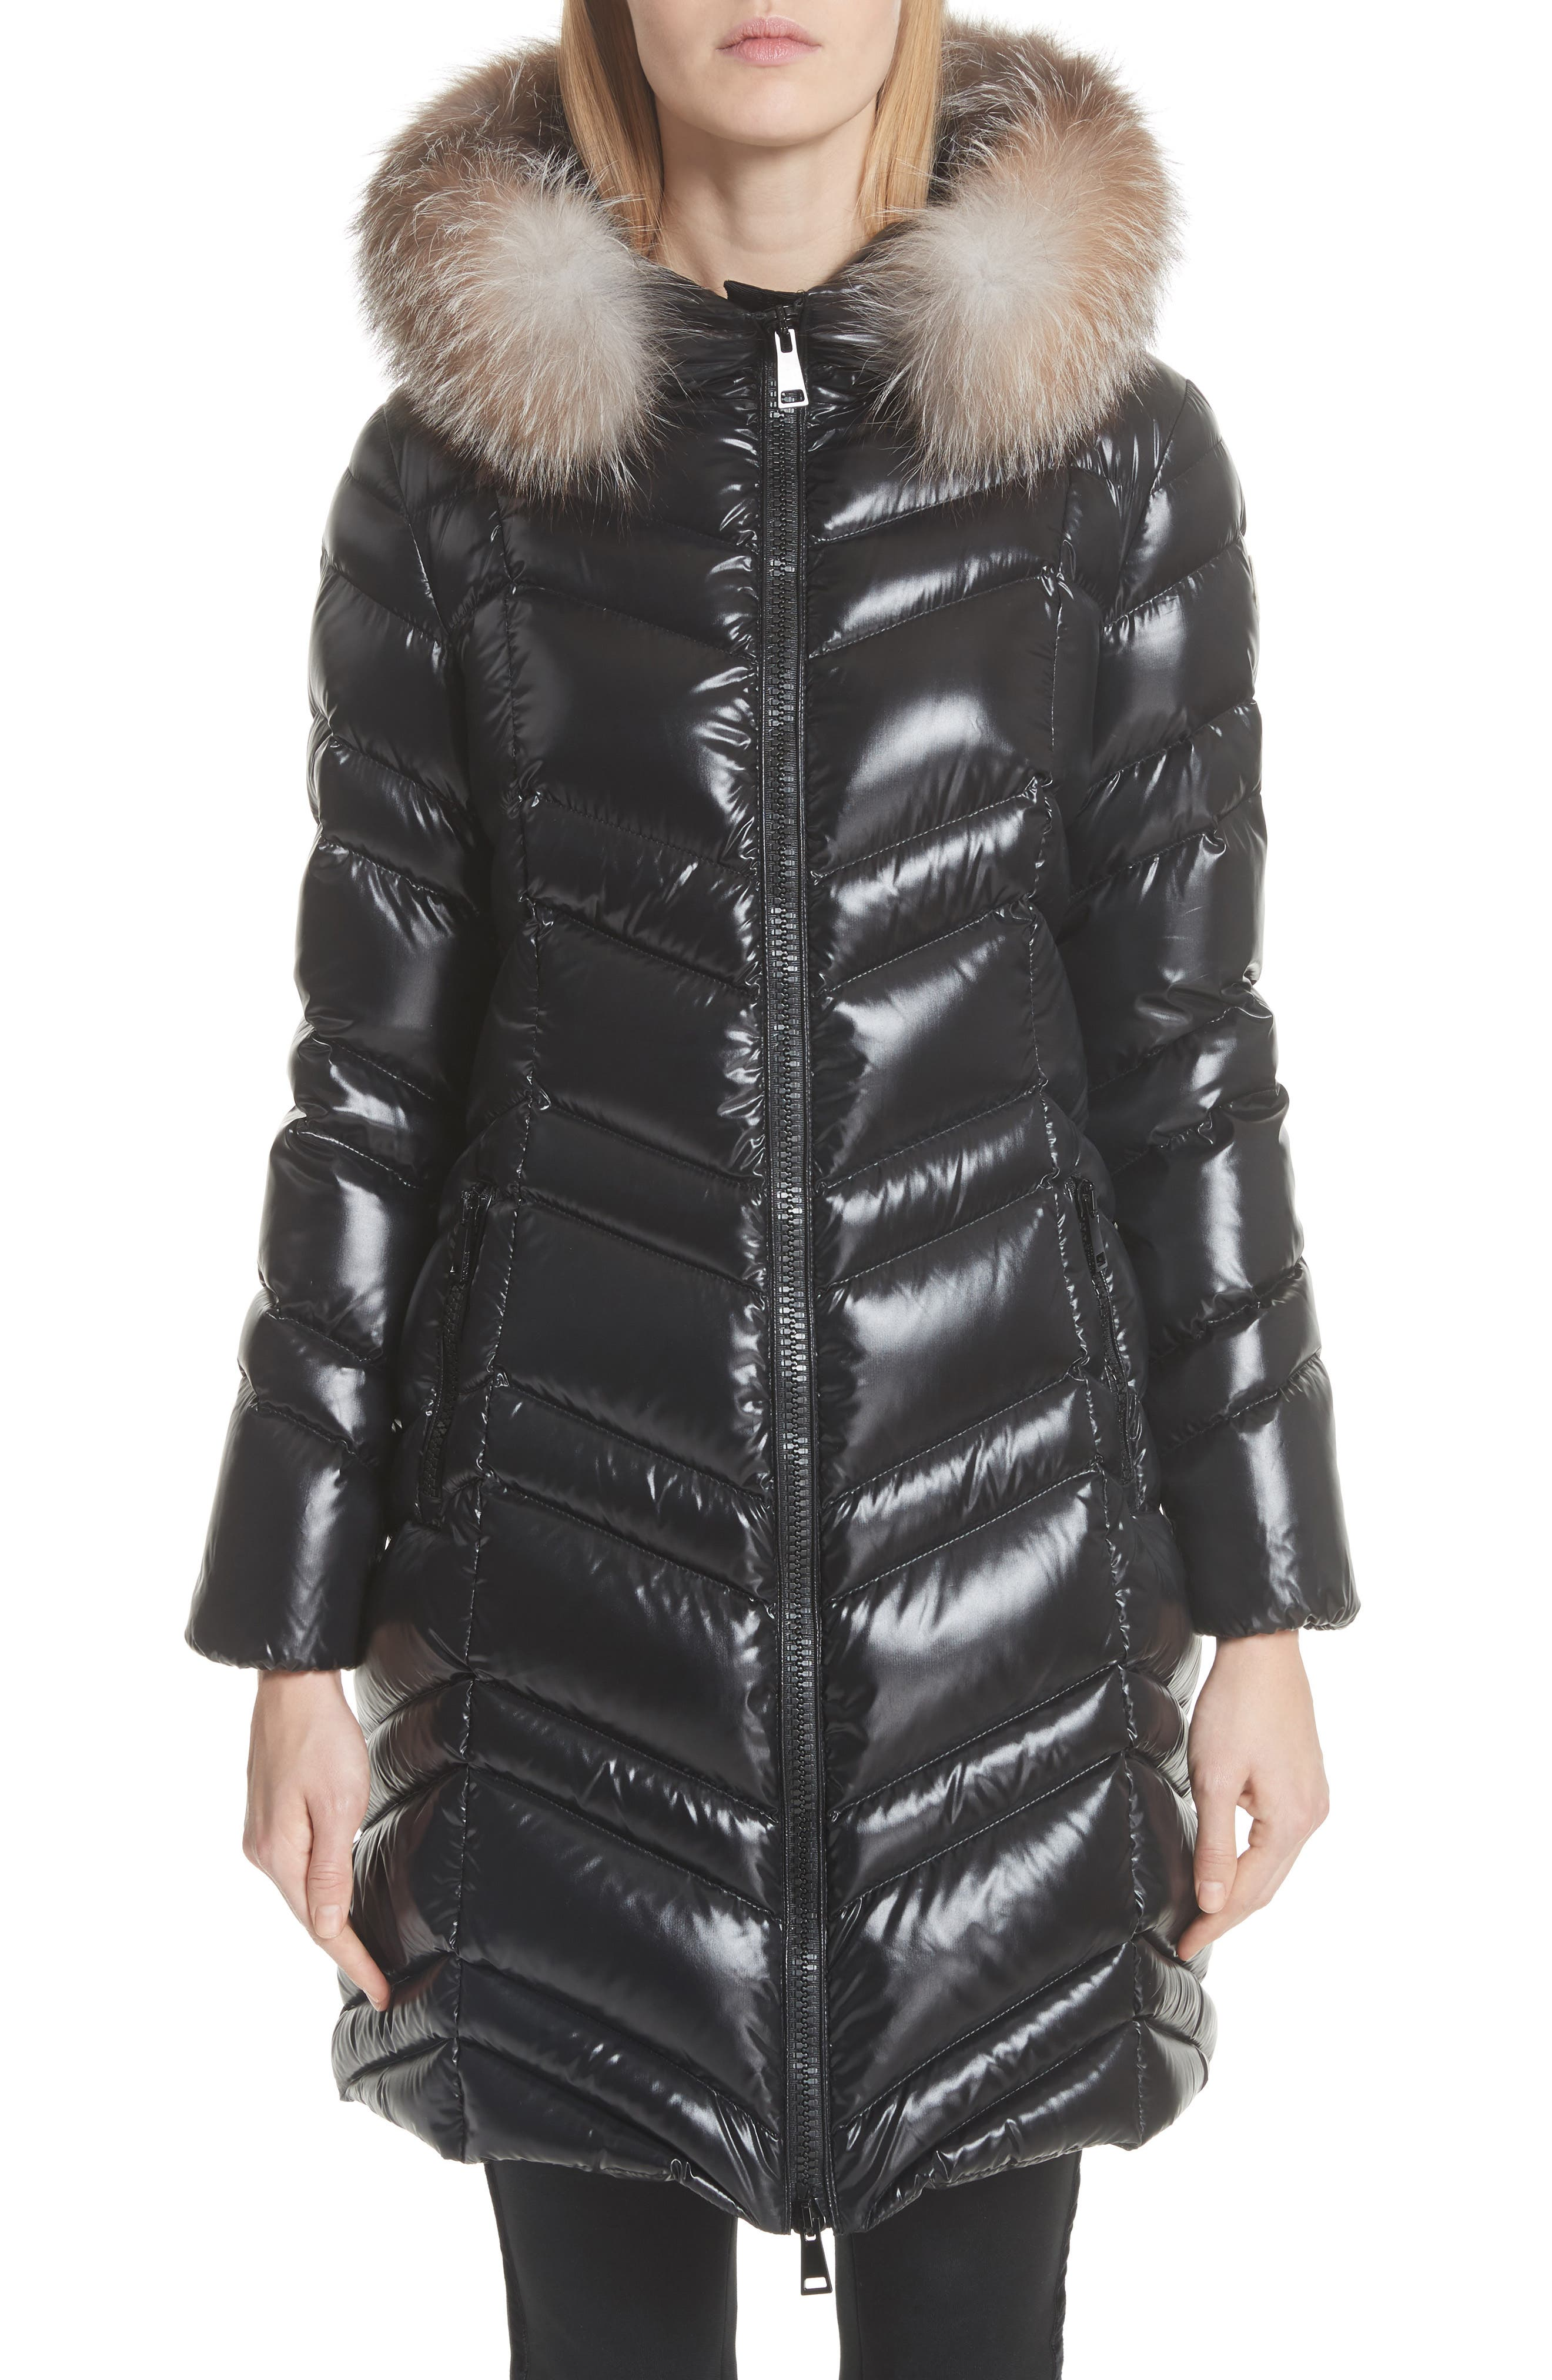 MONCLER, Fulmar Hooded Down Puffer Coat with Removable Genuine Fox Fur Trim, Main thumbnail 1, color, BLACK